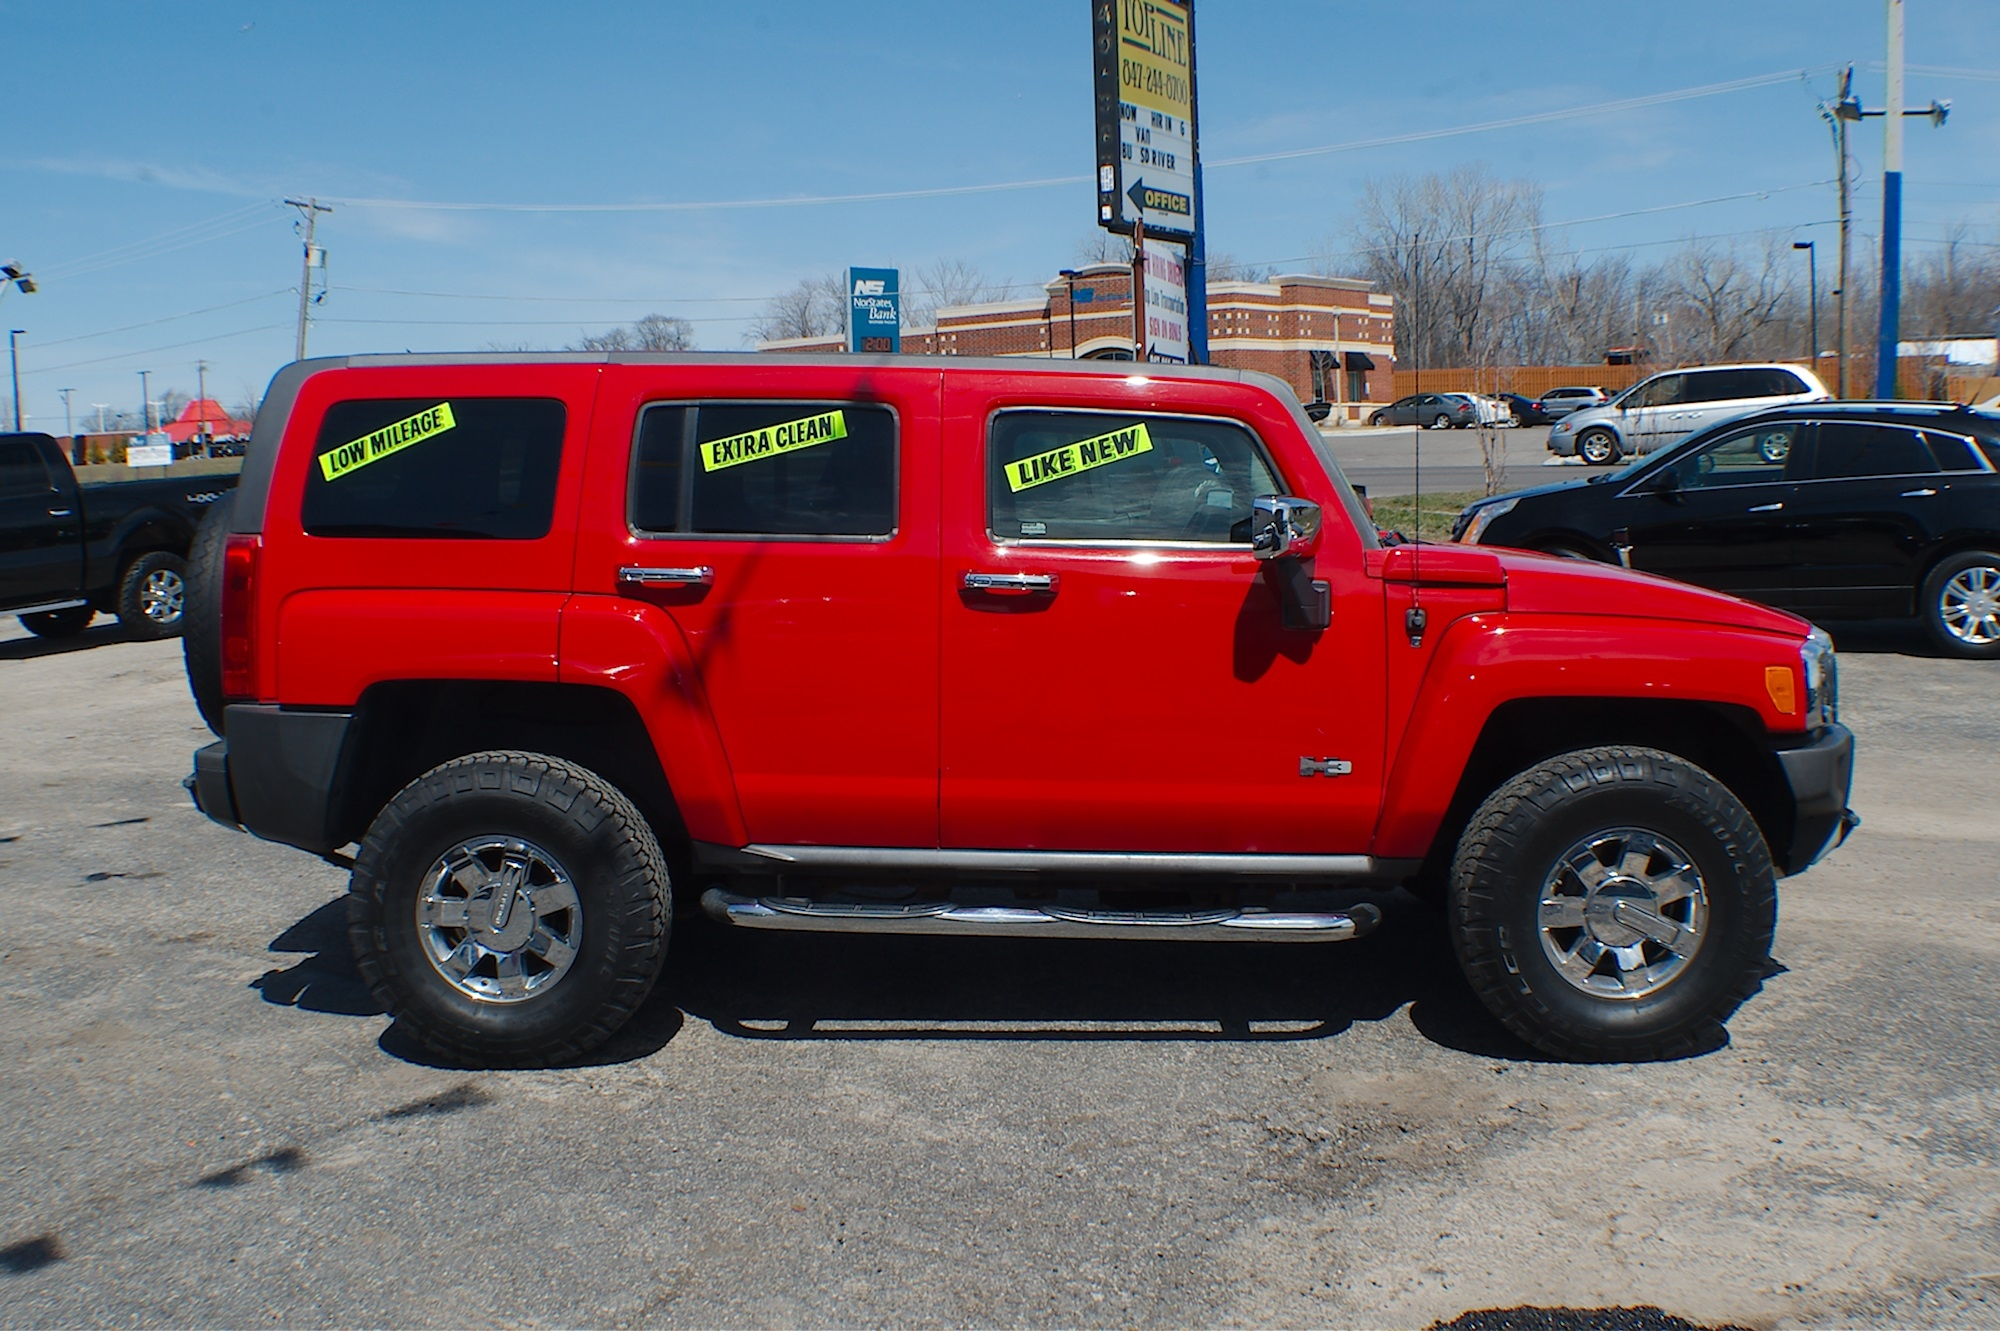 2009 Hummer H3 Red 4x4 Used SUV sale Bannockburn Barrington Beach Park